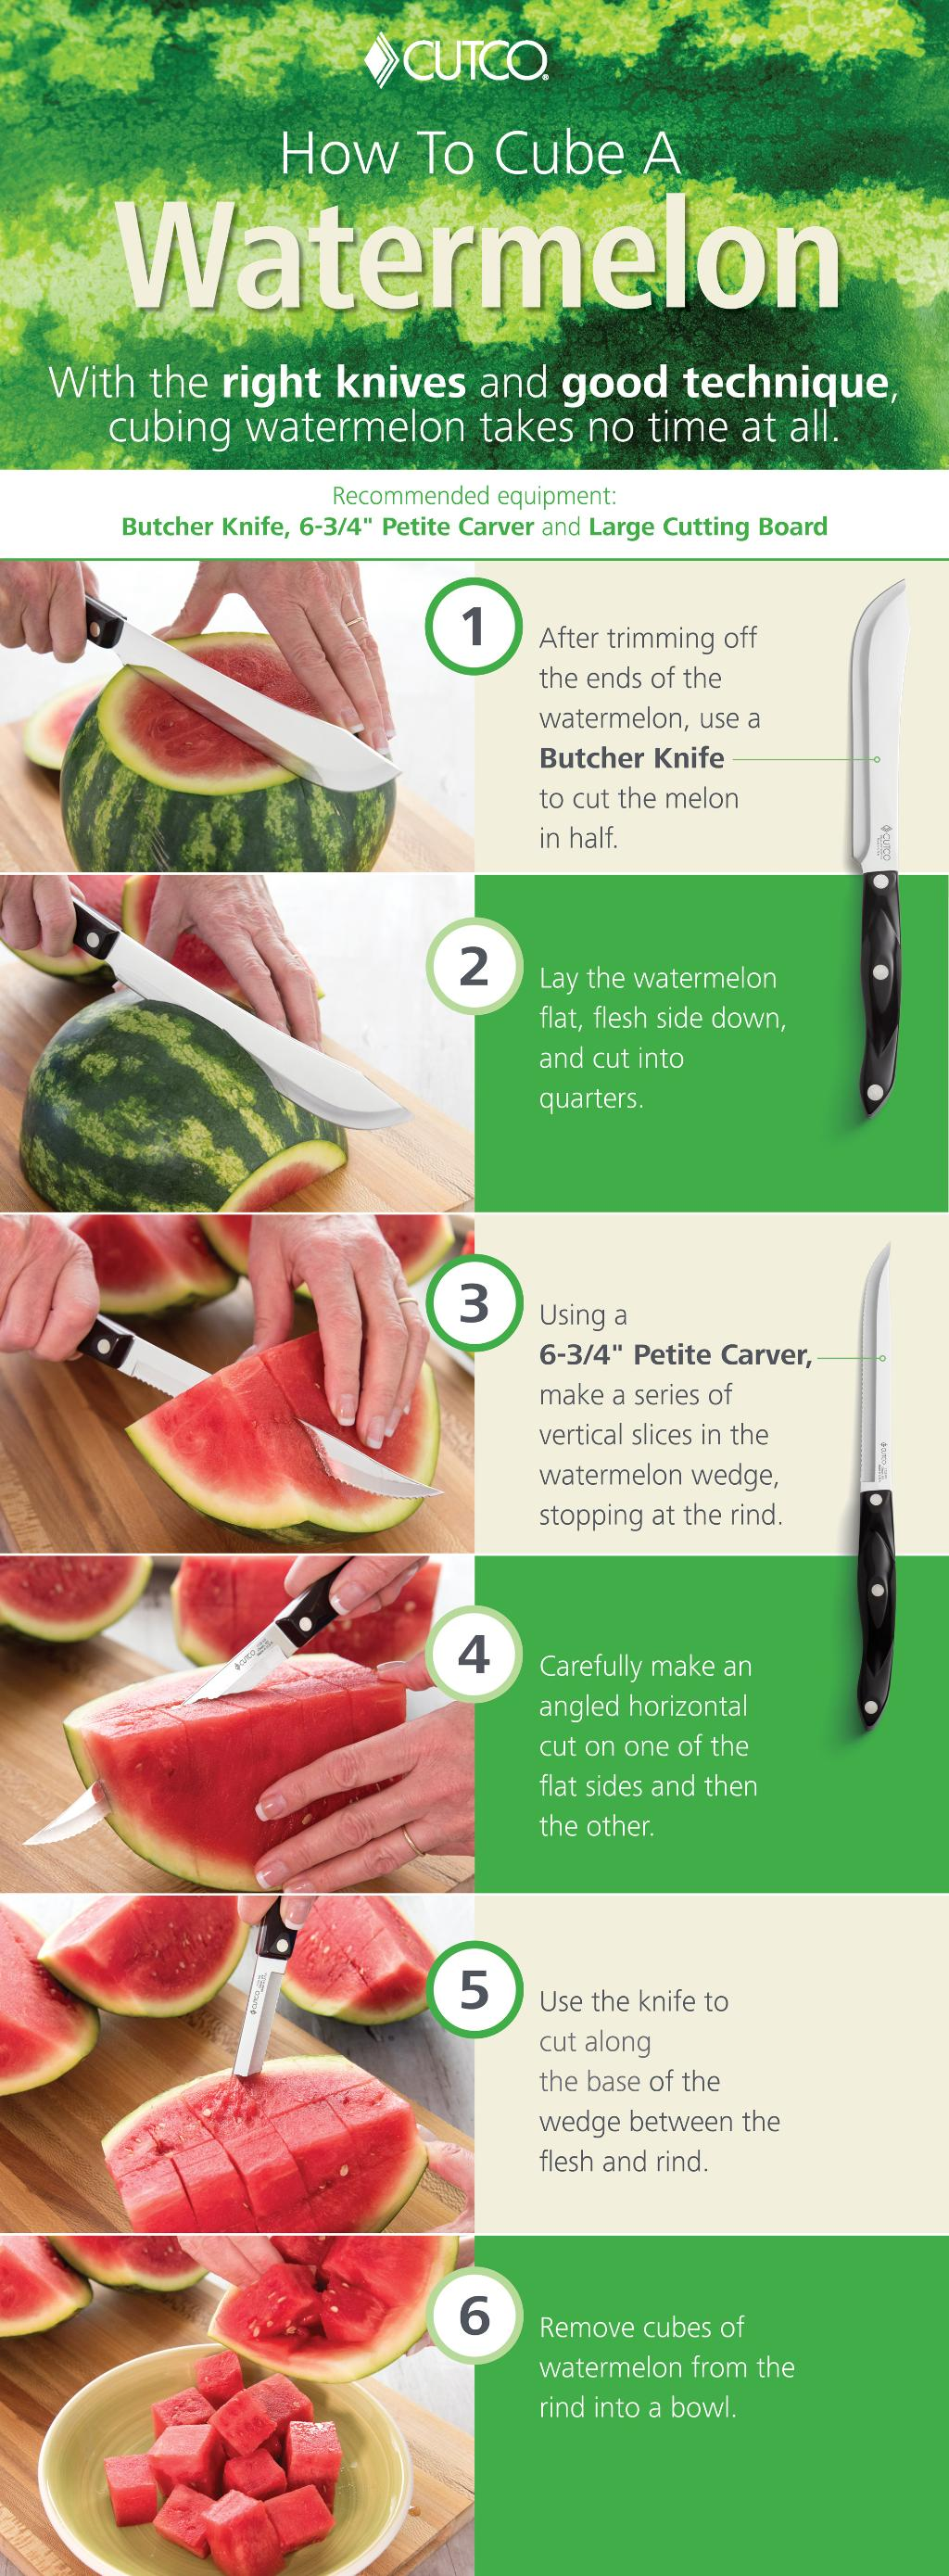 How to cut up watermelon into cubes